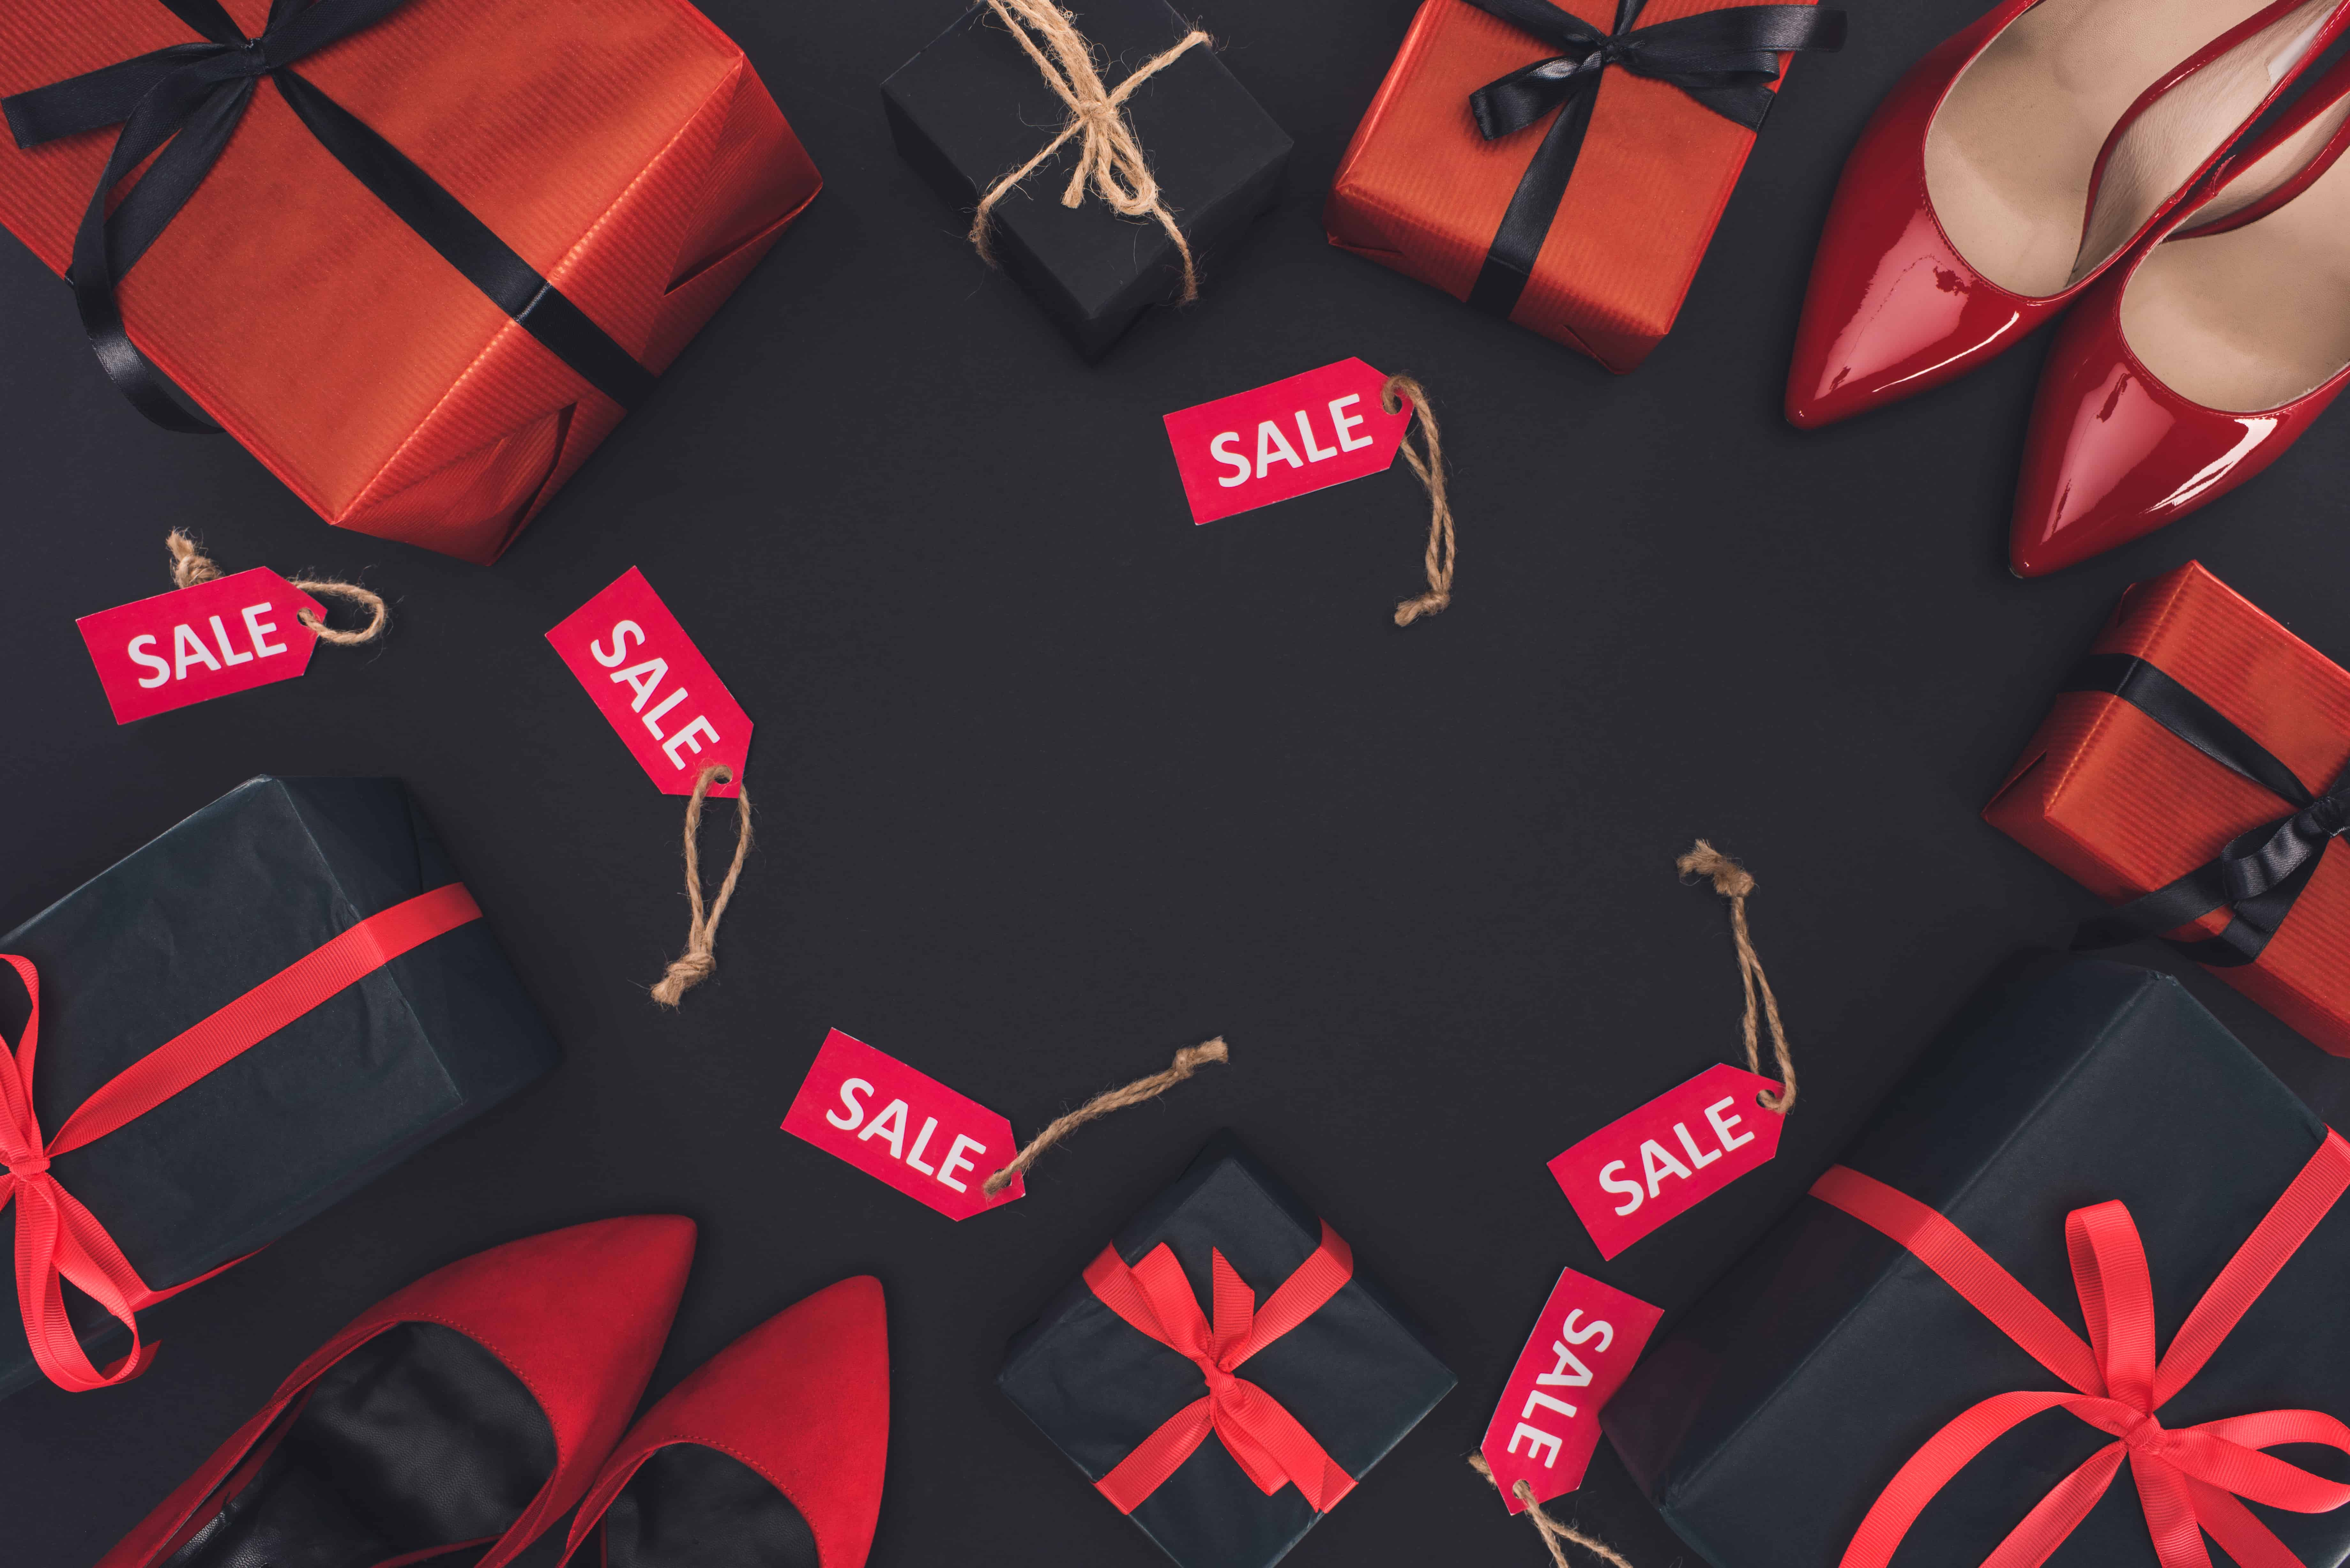 Footfall drops in UK stores over Black Friday weekend